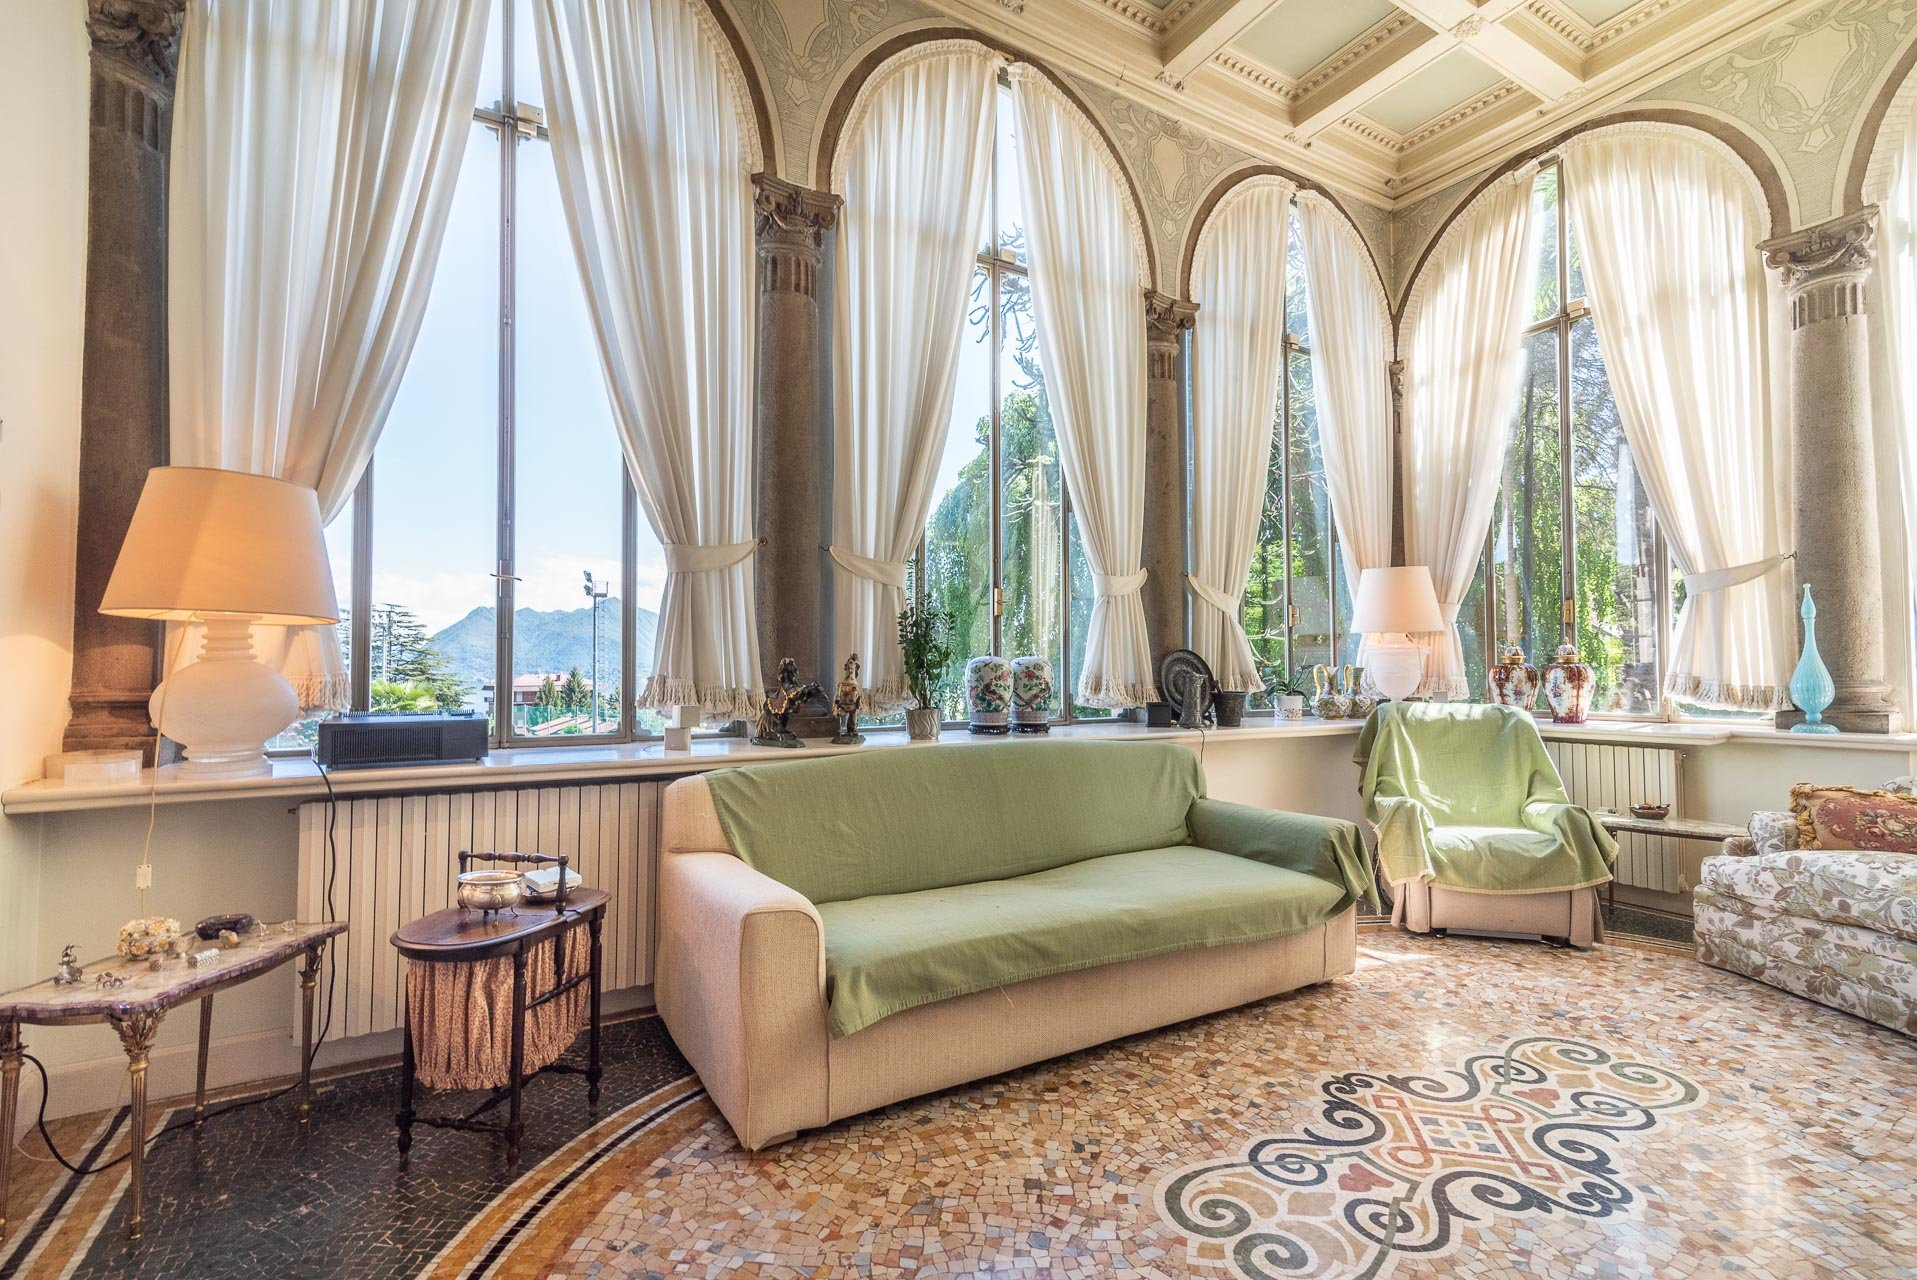 Luxurious apartment for sale in a villa in Stresa - living area